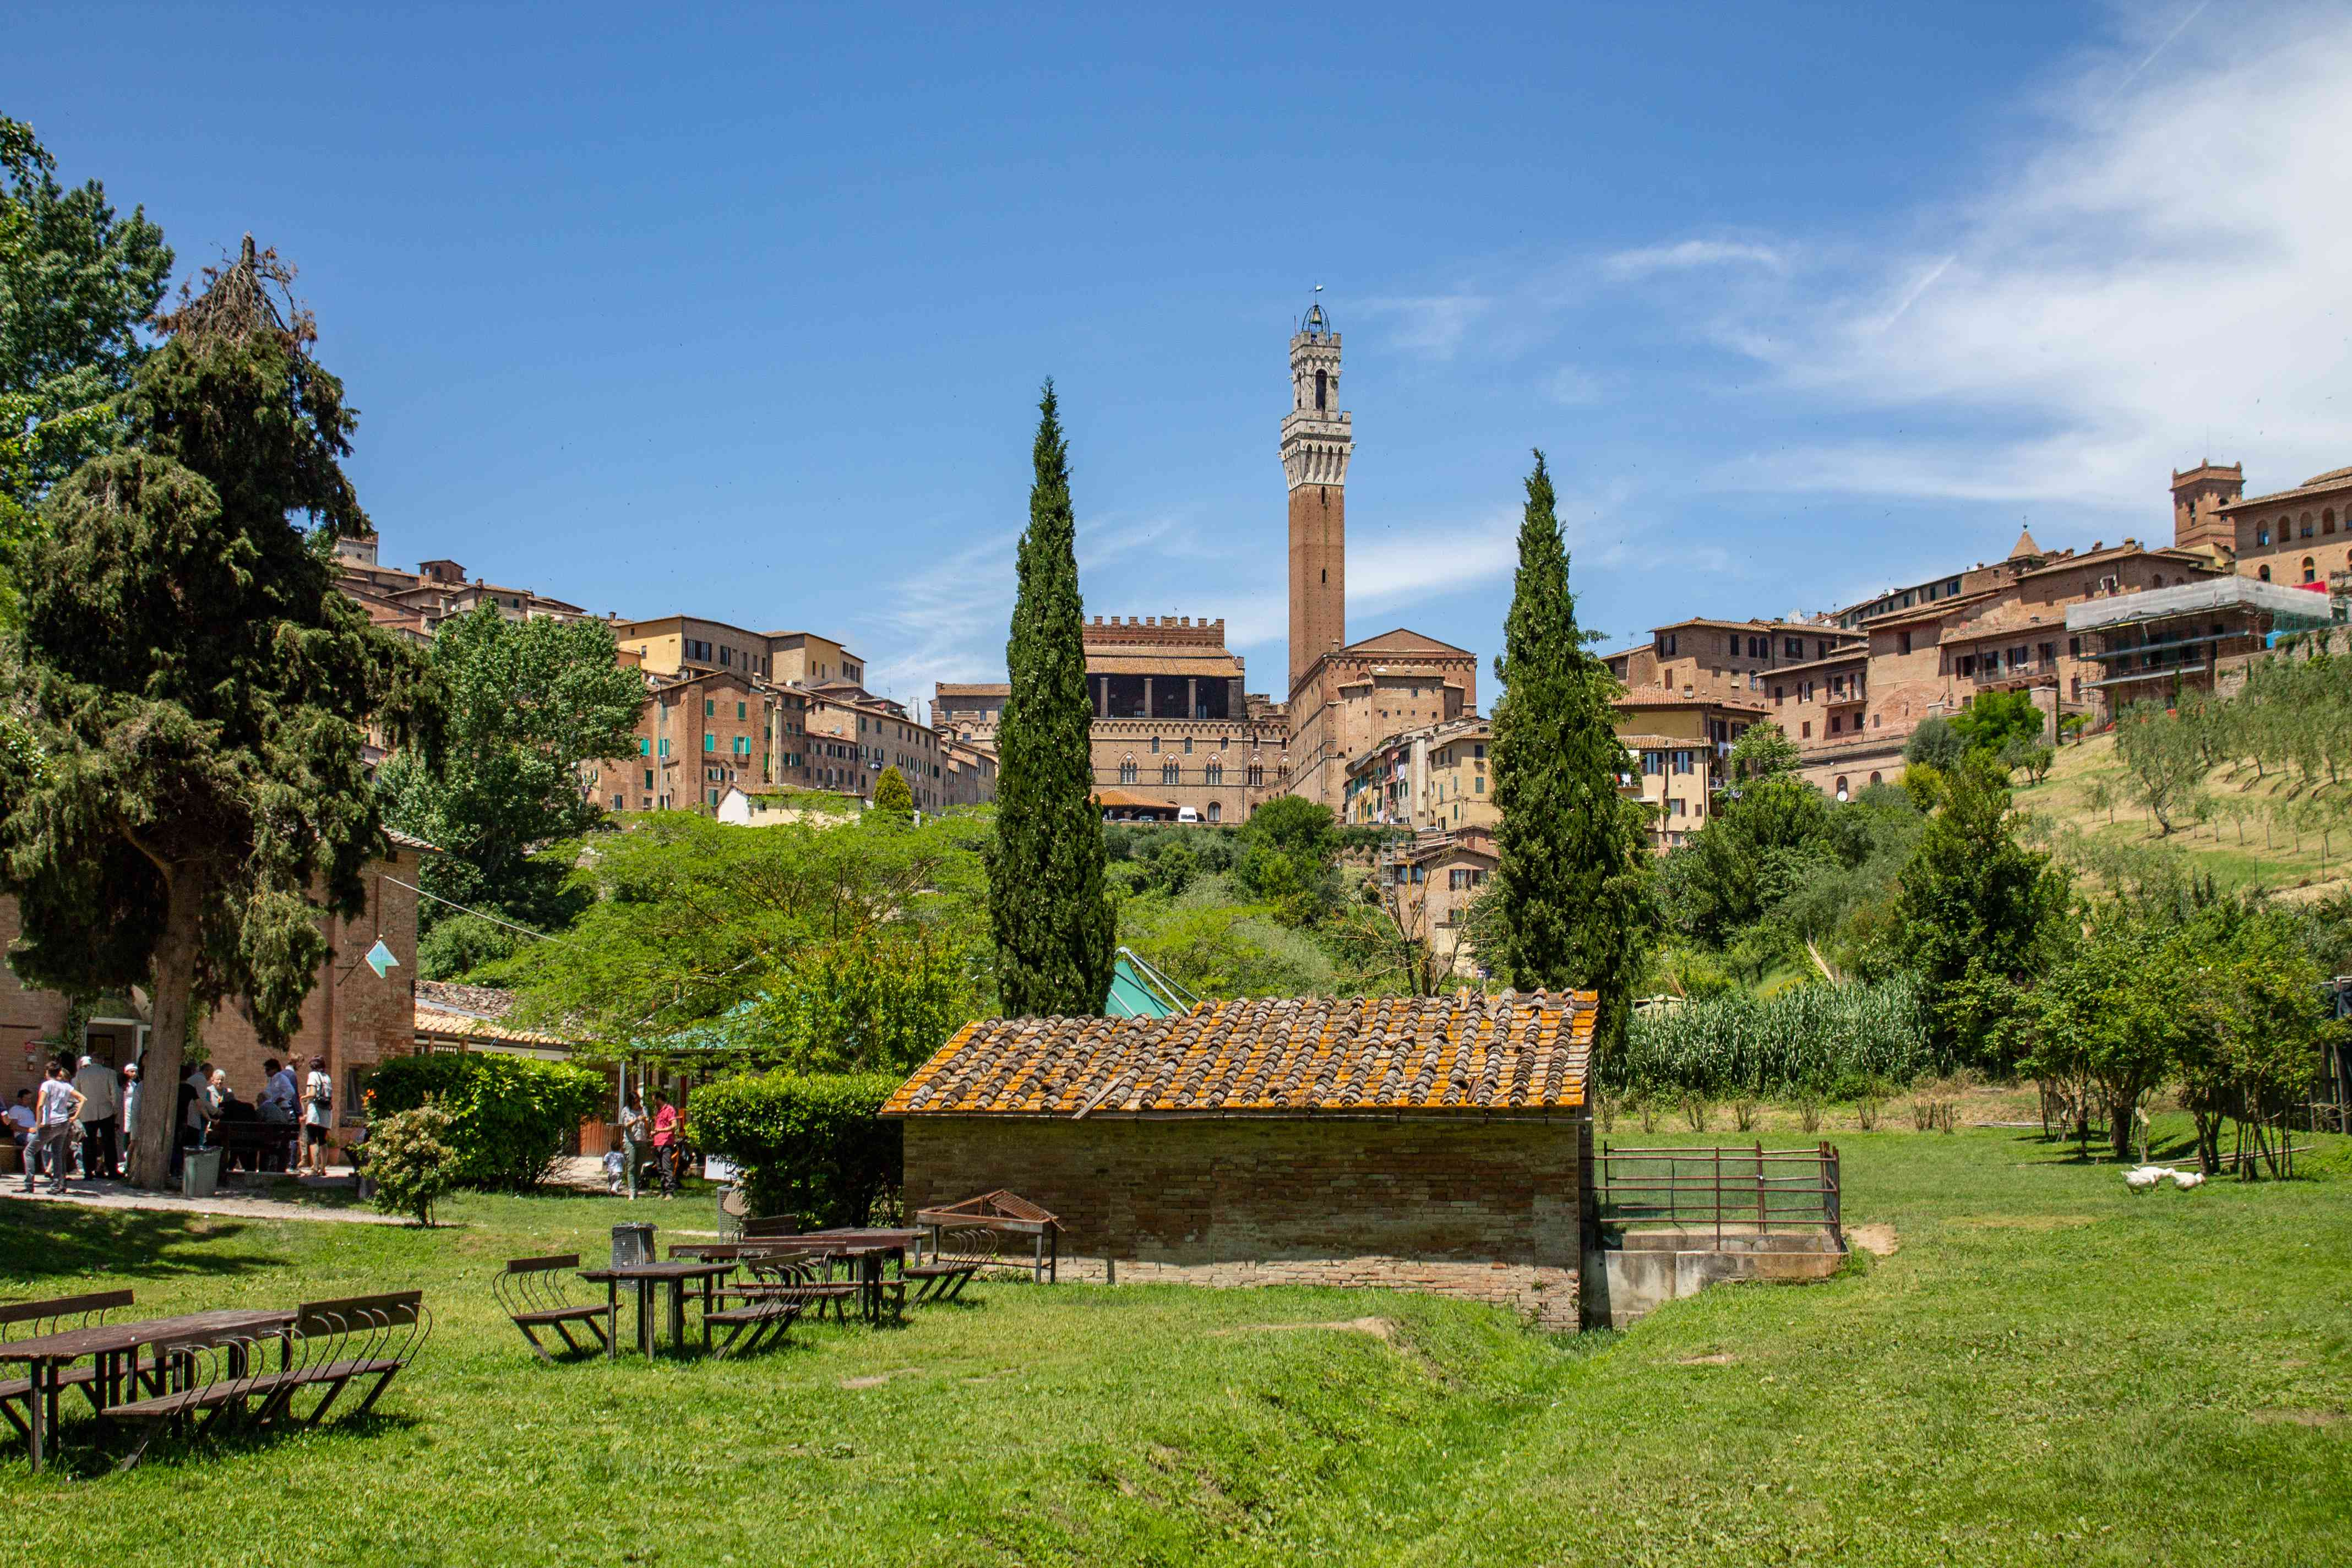 A grassy park in Siena with architecture in the background